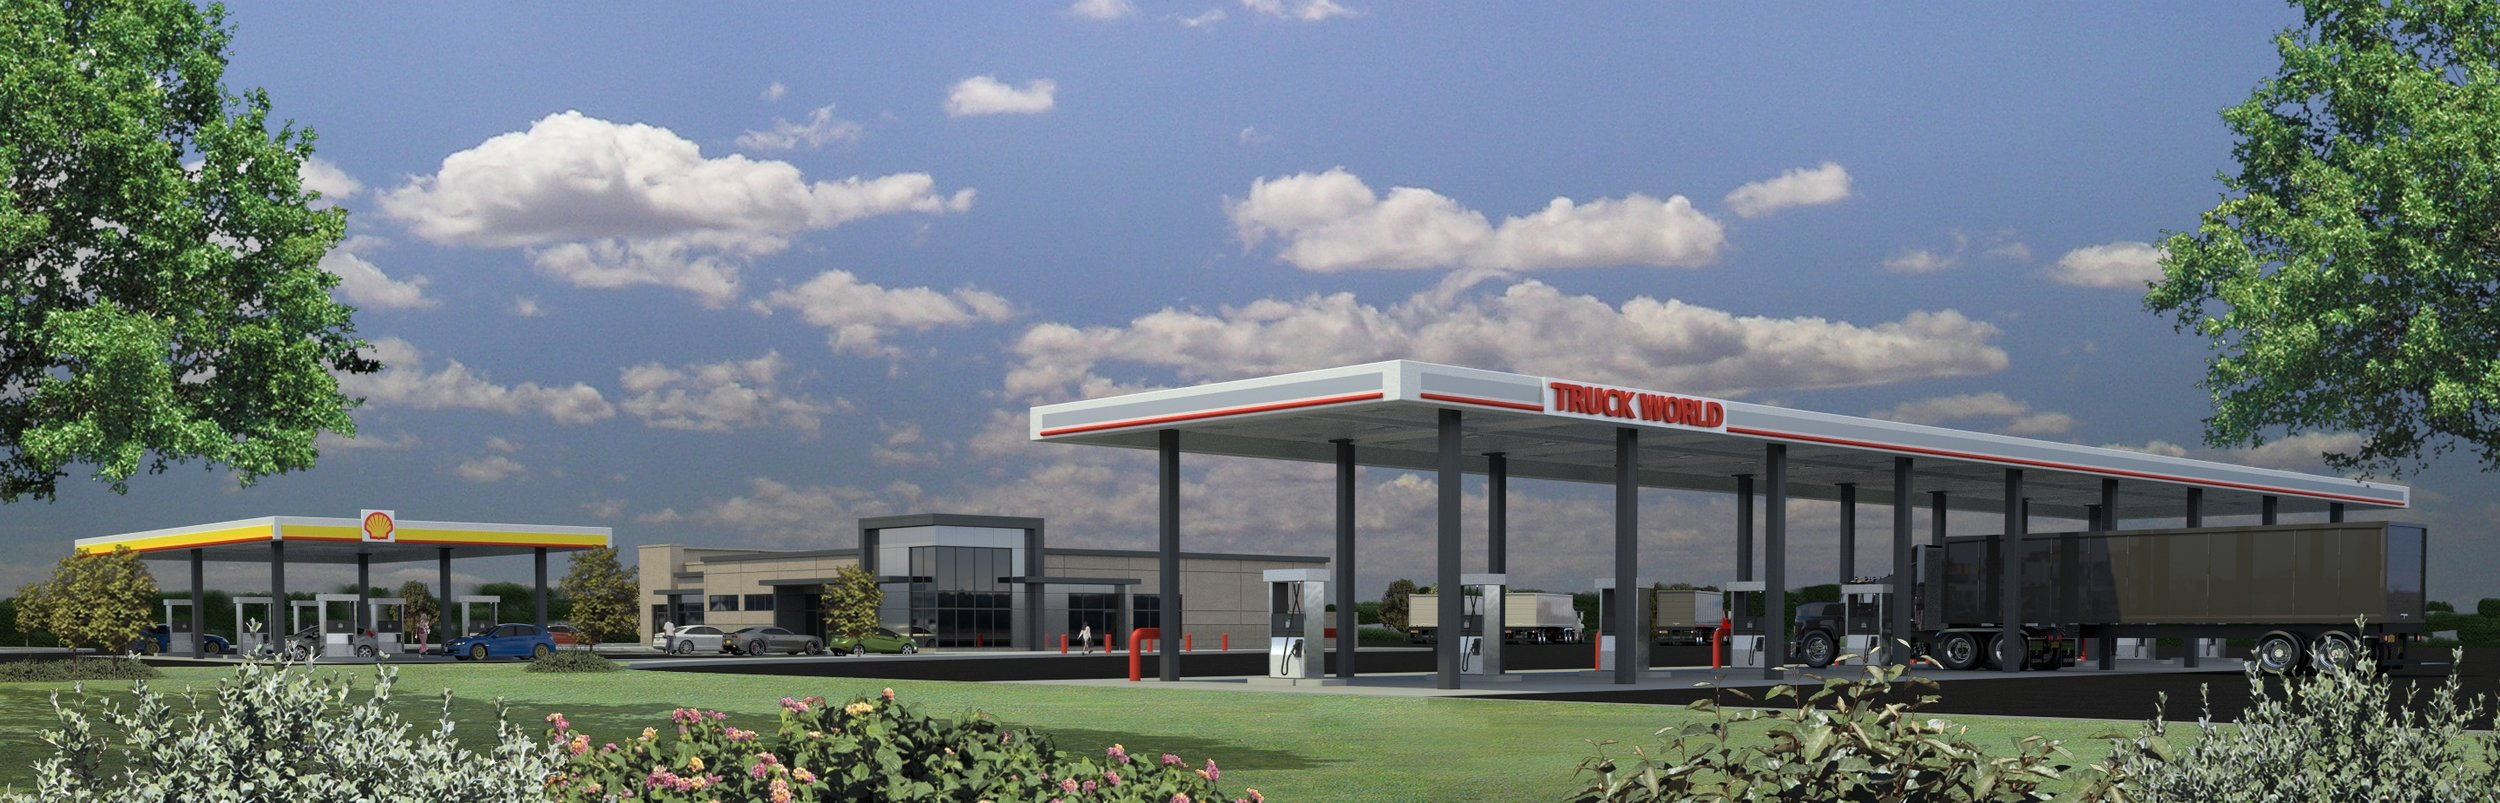 Visit our newest travel plaza and Shell station in North Jackson, OH at I-76 & Bailey Road   12700 Leonard Parkway,North Jackson, Ohio 44451   Onsite Amenities:  Diesel, Shell Gas, DEF,Burger King, showers, convenience store,beer and wine, WIFI, certified truck scale.  Telephone: 330.538.7030 Fax: 330.538.7173